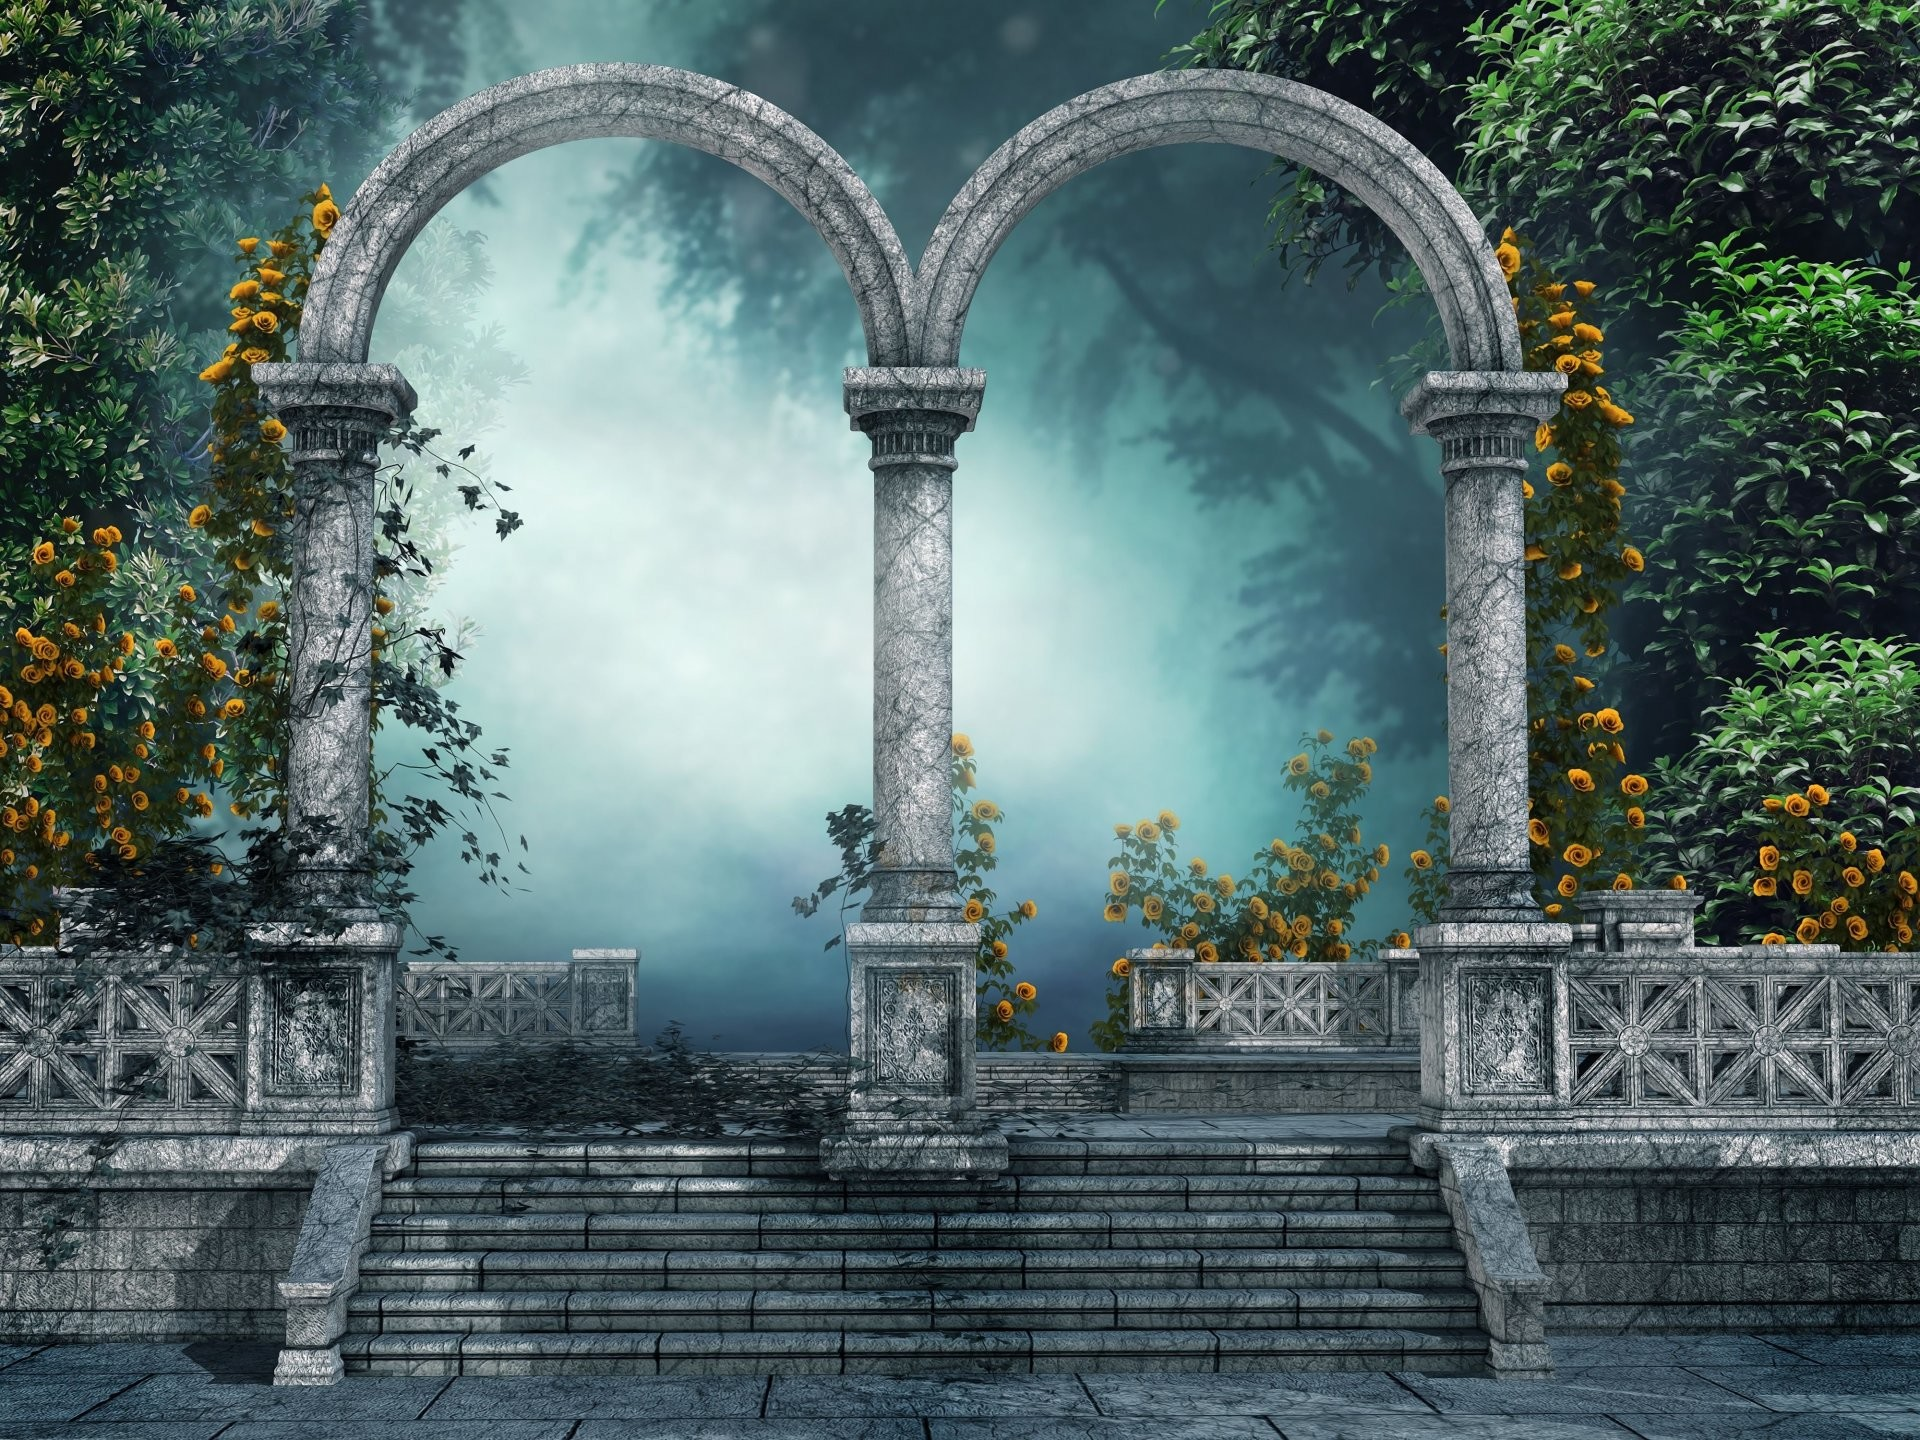 Res: 1920x1440, Bild: Arch Tor Blumen Pflanzen Foggy wallpapers and stock photos. Â«